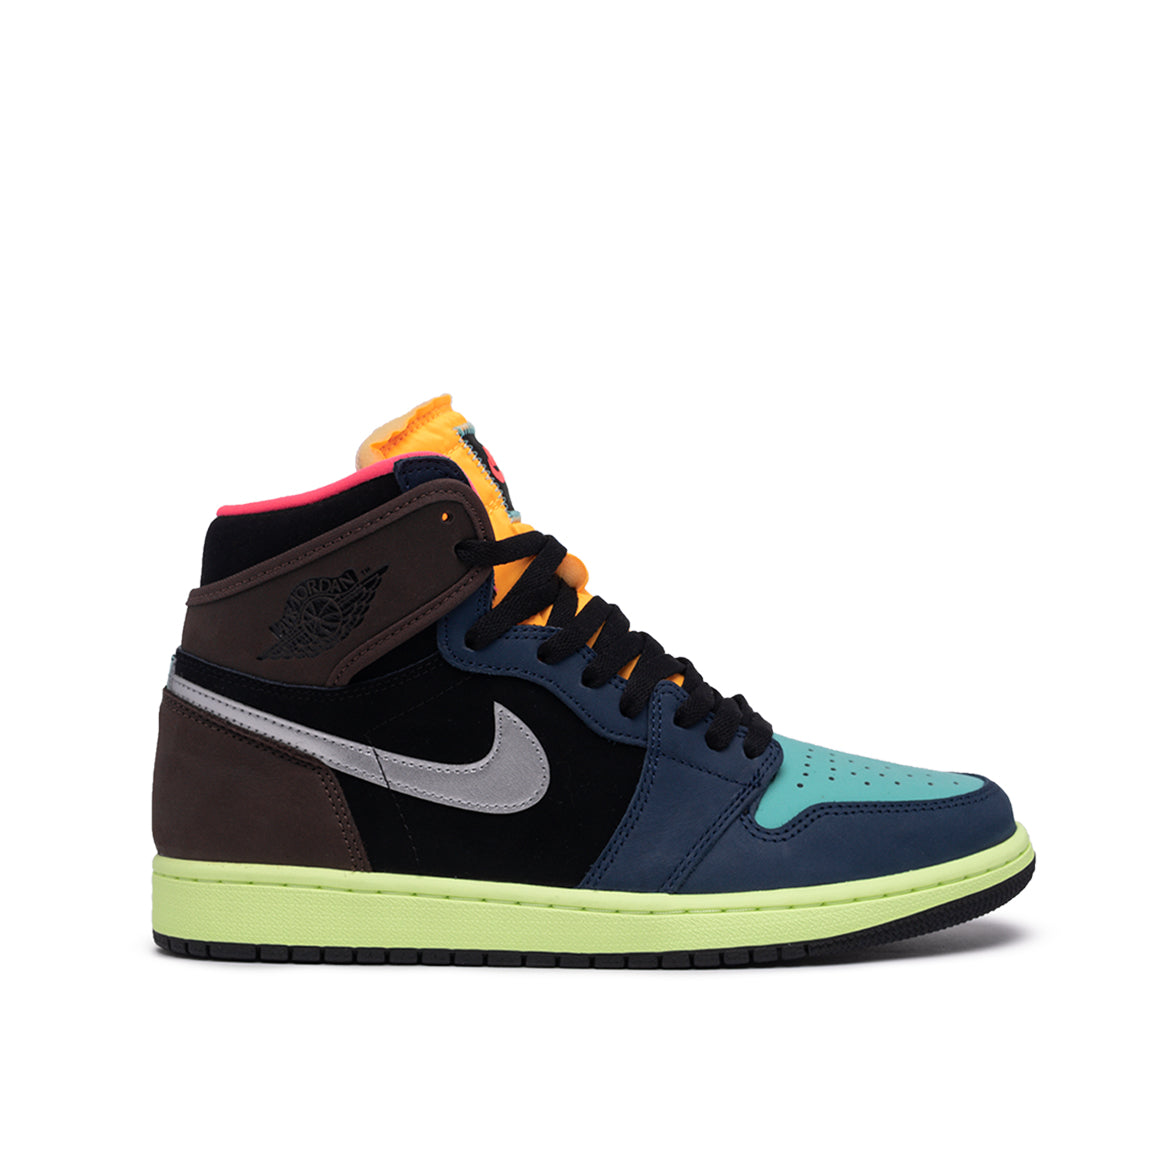 "AIR JORDAN 1 RETRO HIGH OG (GS) ""BIO HACK"""